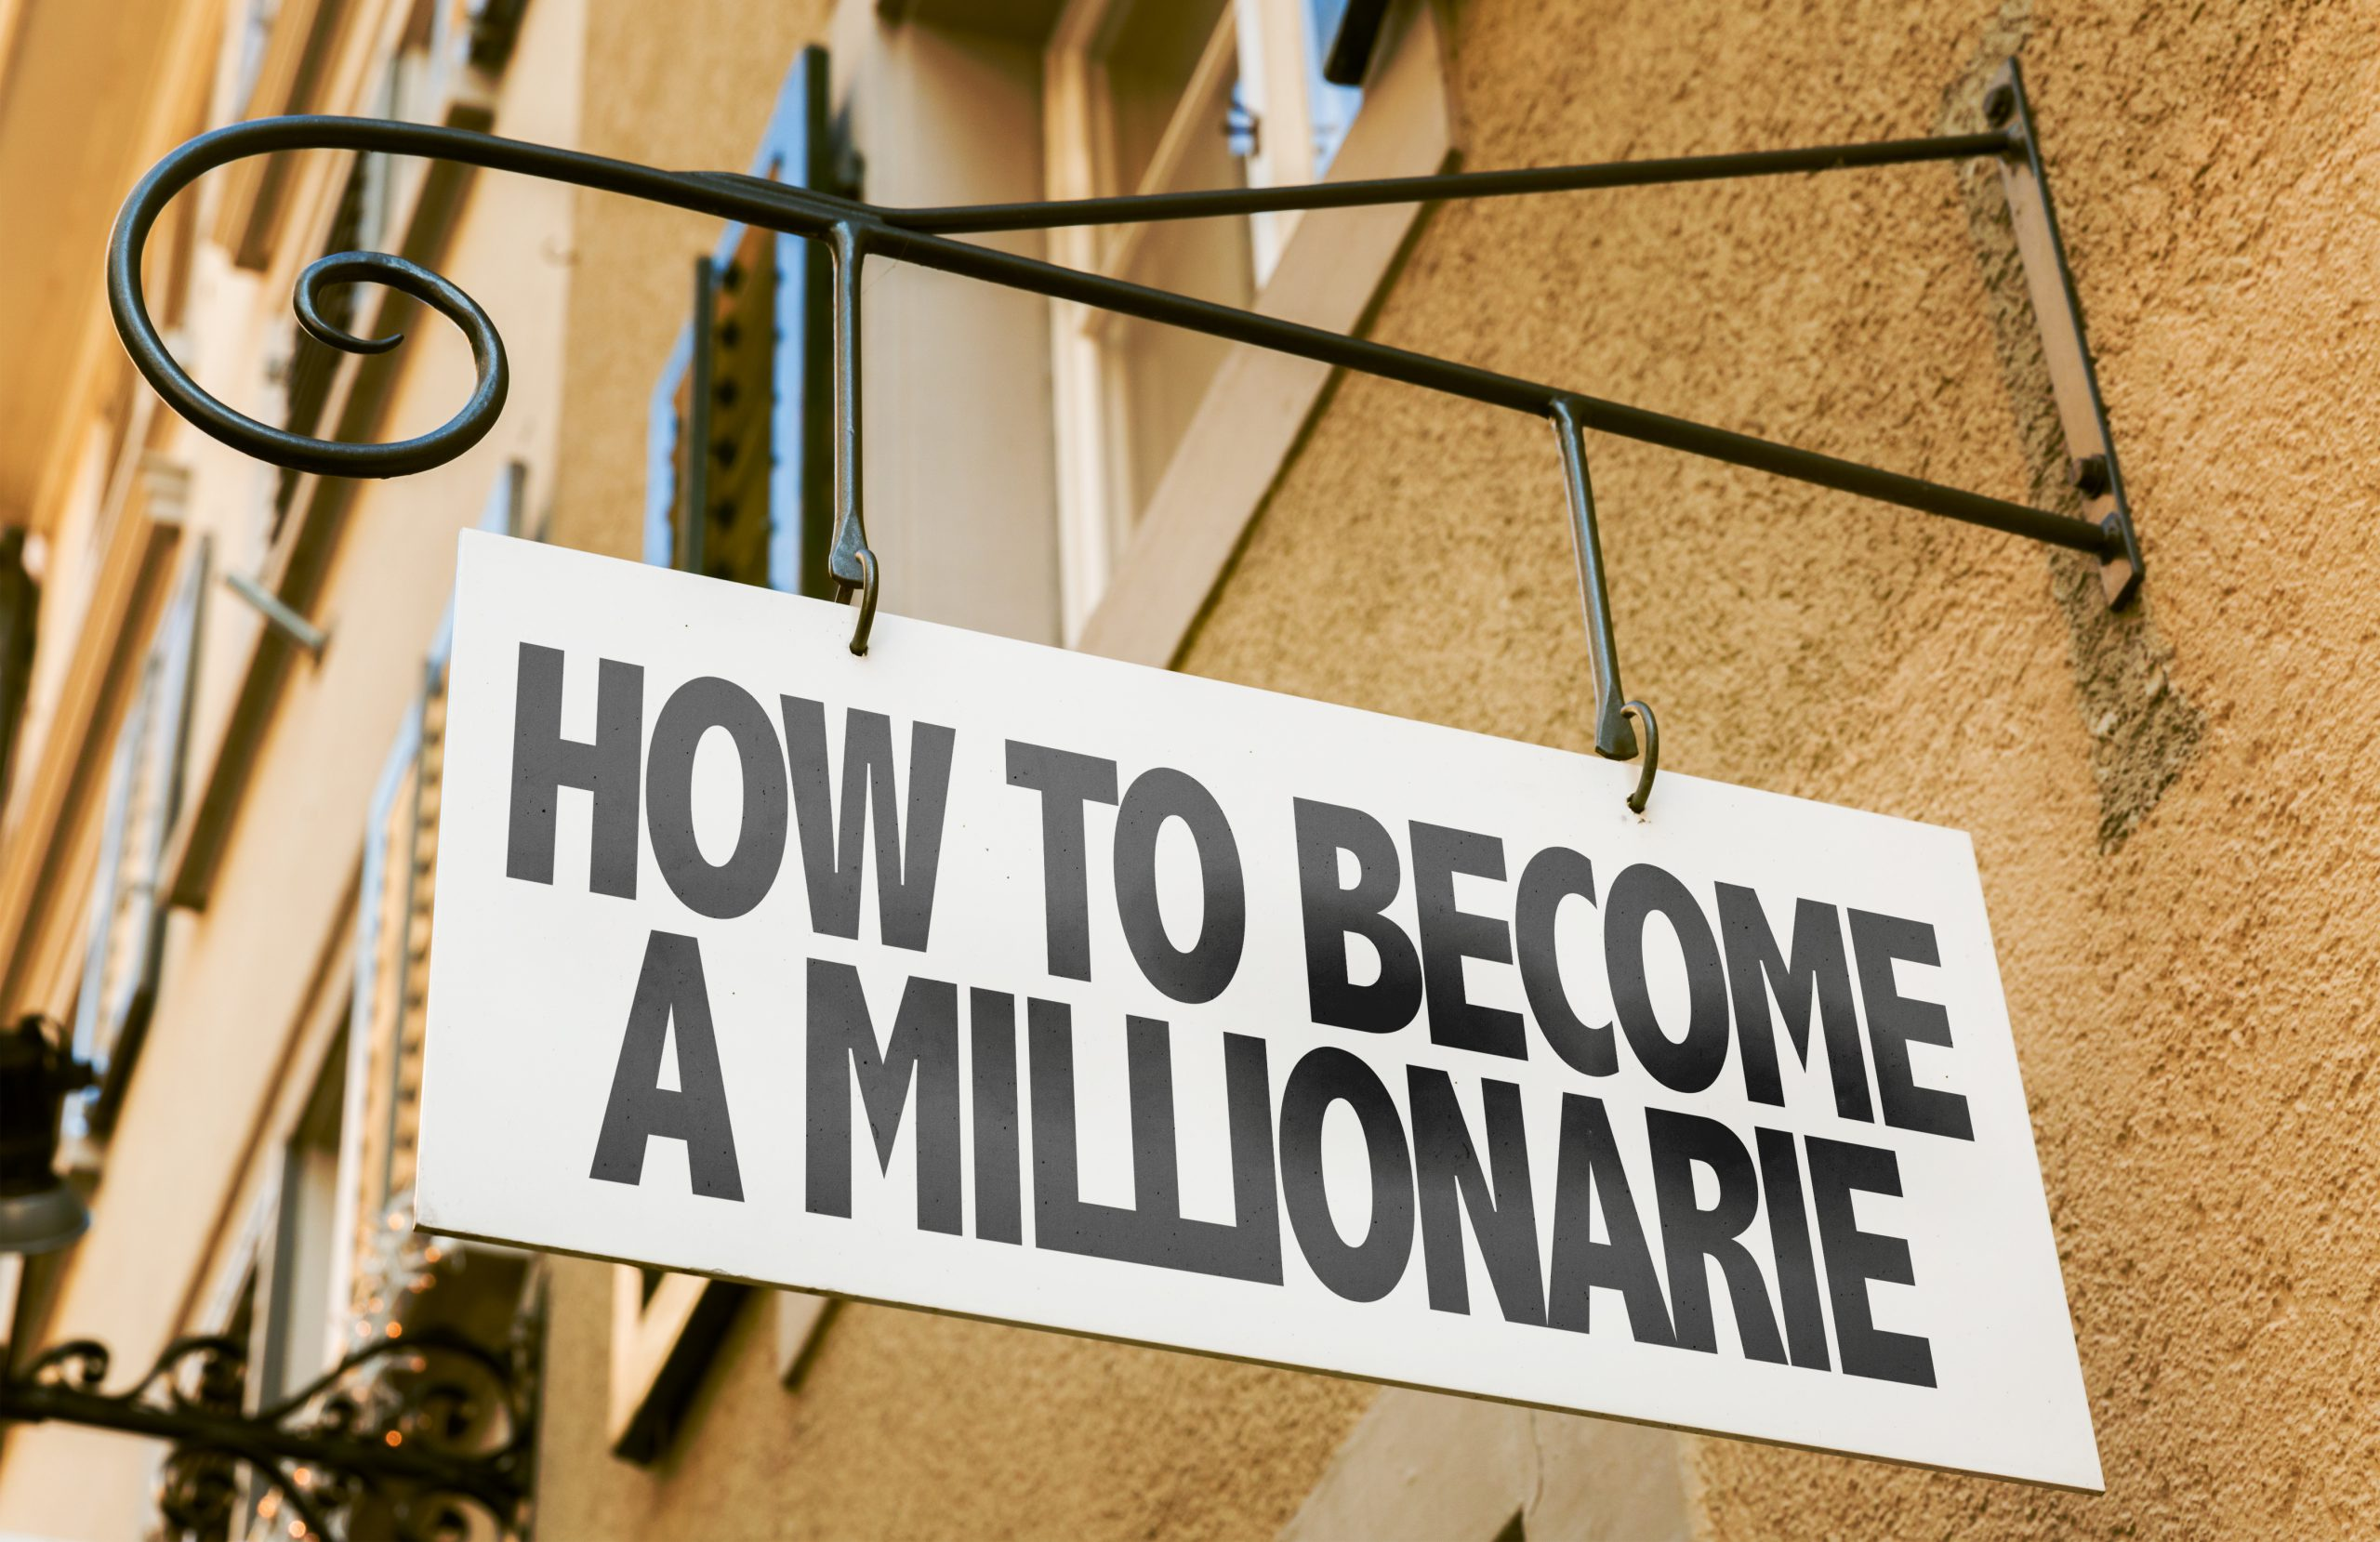 Overnight Millionaires [Archives] [Repost from July 10, 2013]